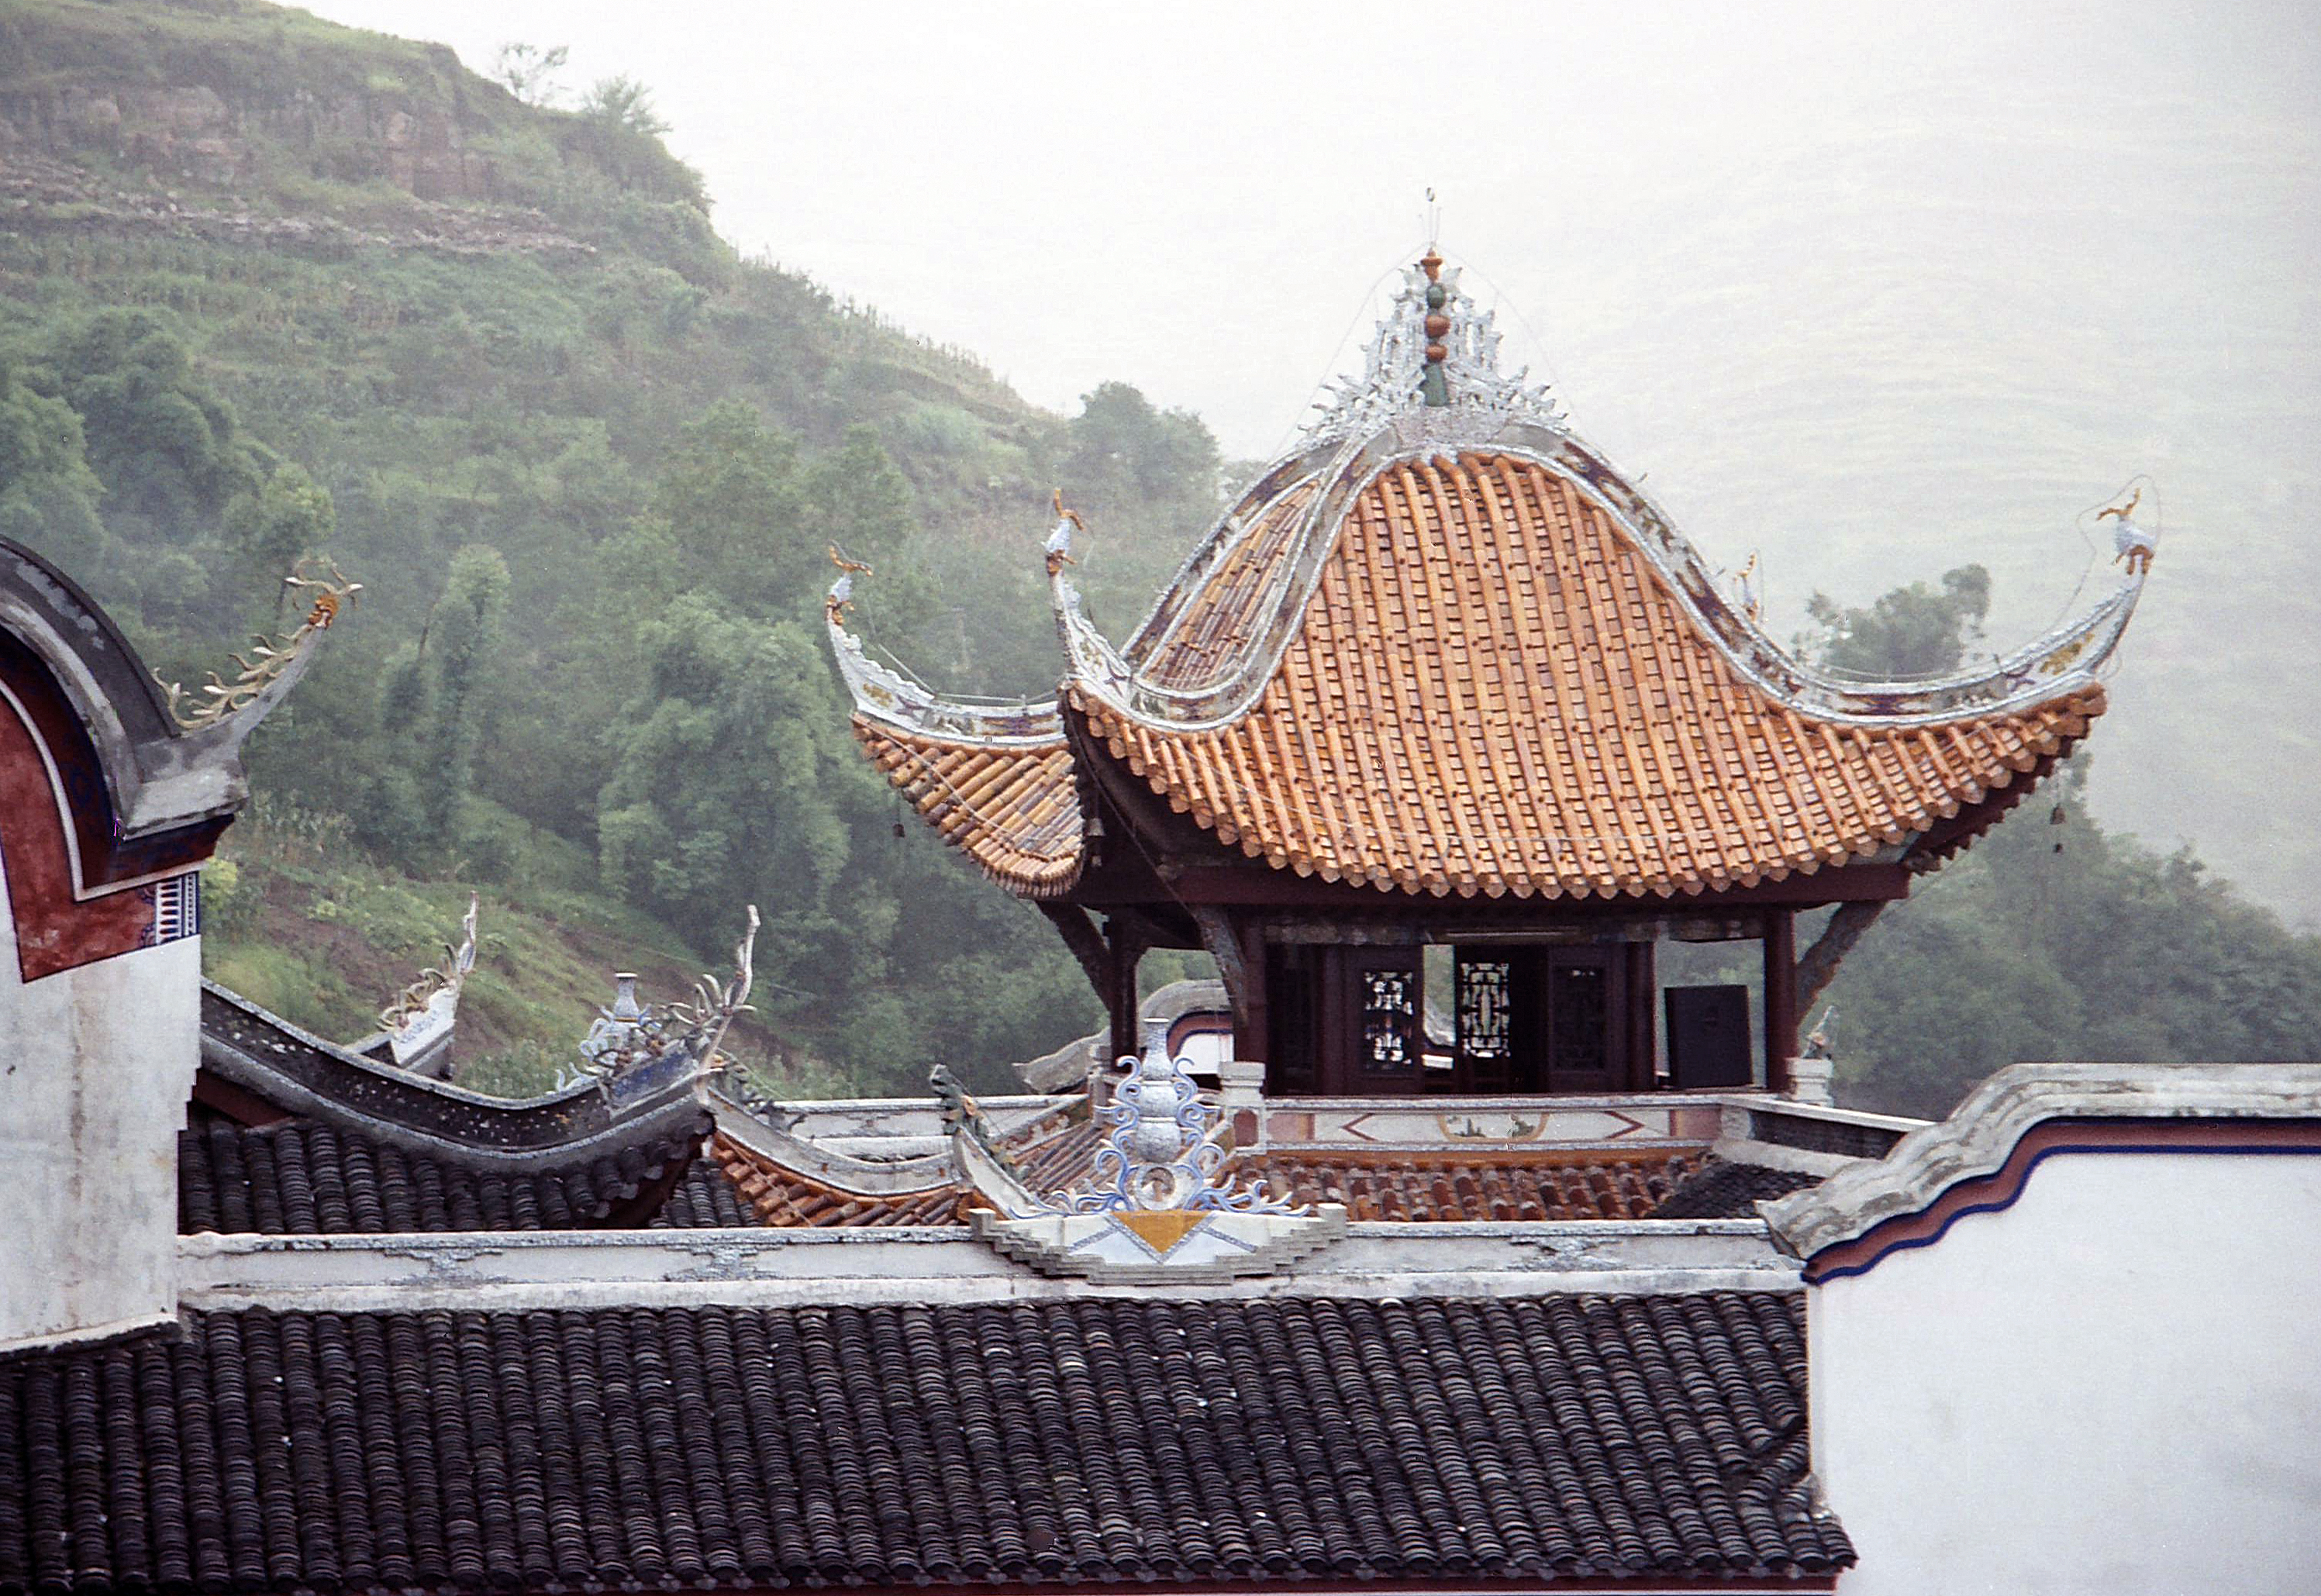 Zhang Fei temple, Hubei China 3.jpg - Zhang Fei temple